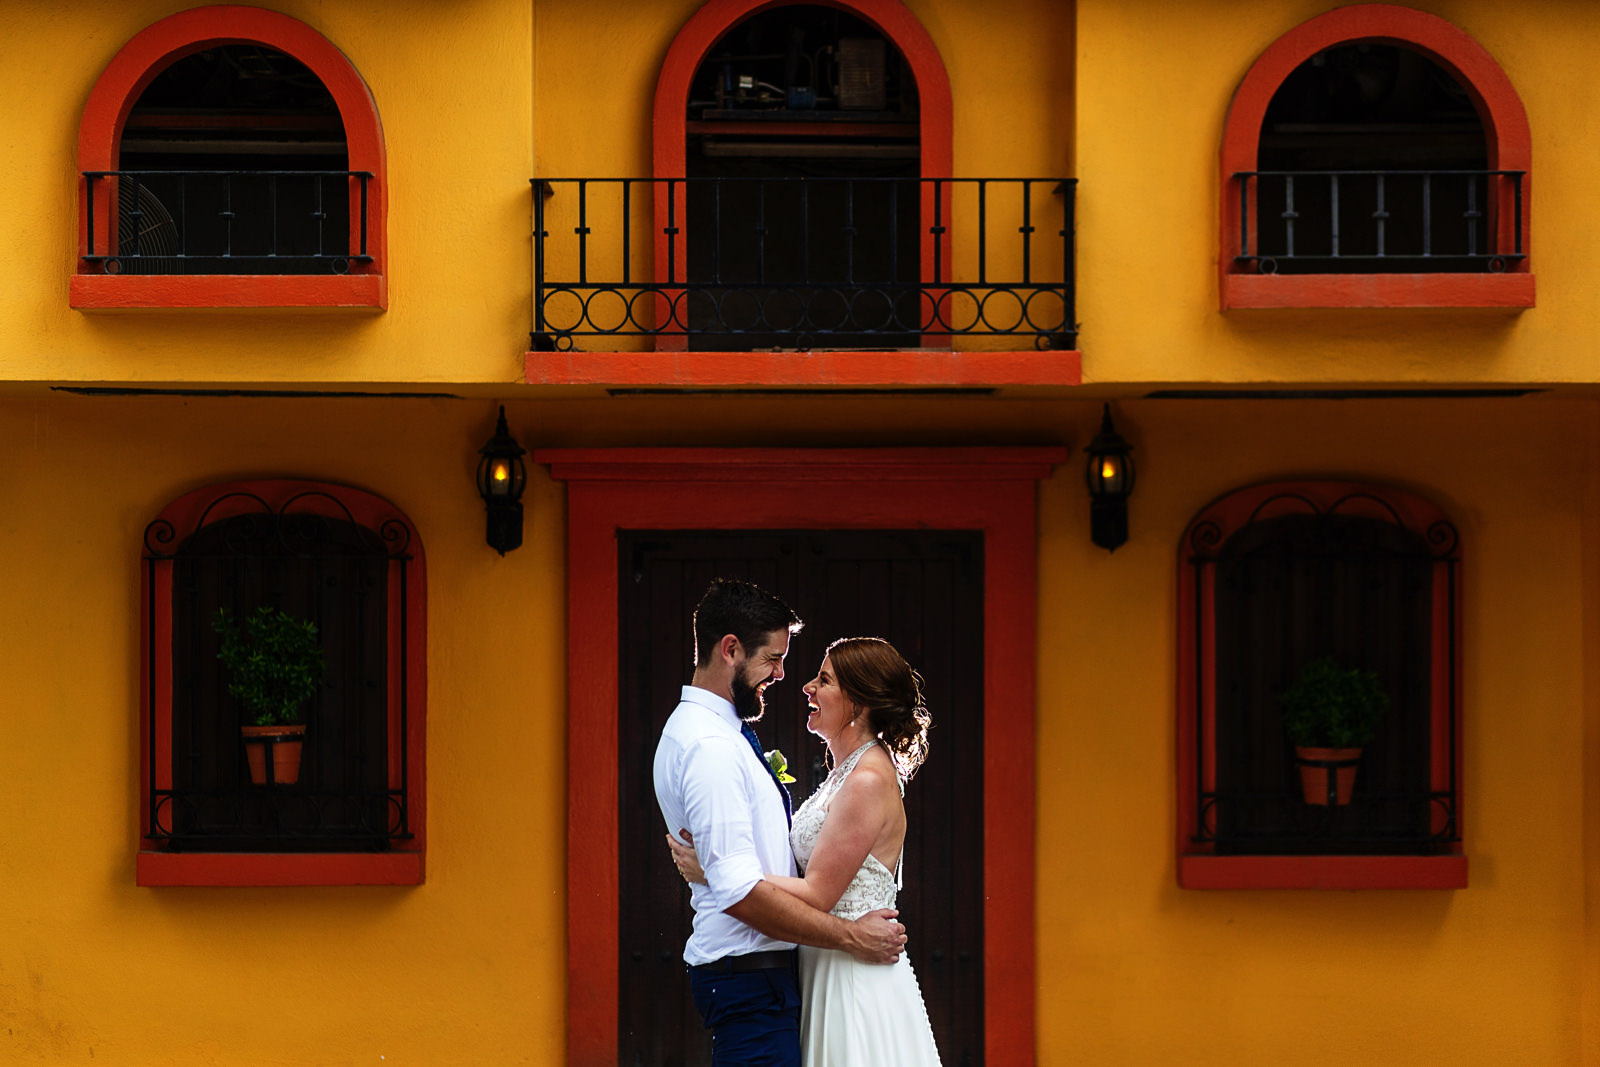 Bride and groom laughing facing each other outside a Mexican styled facade.